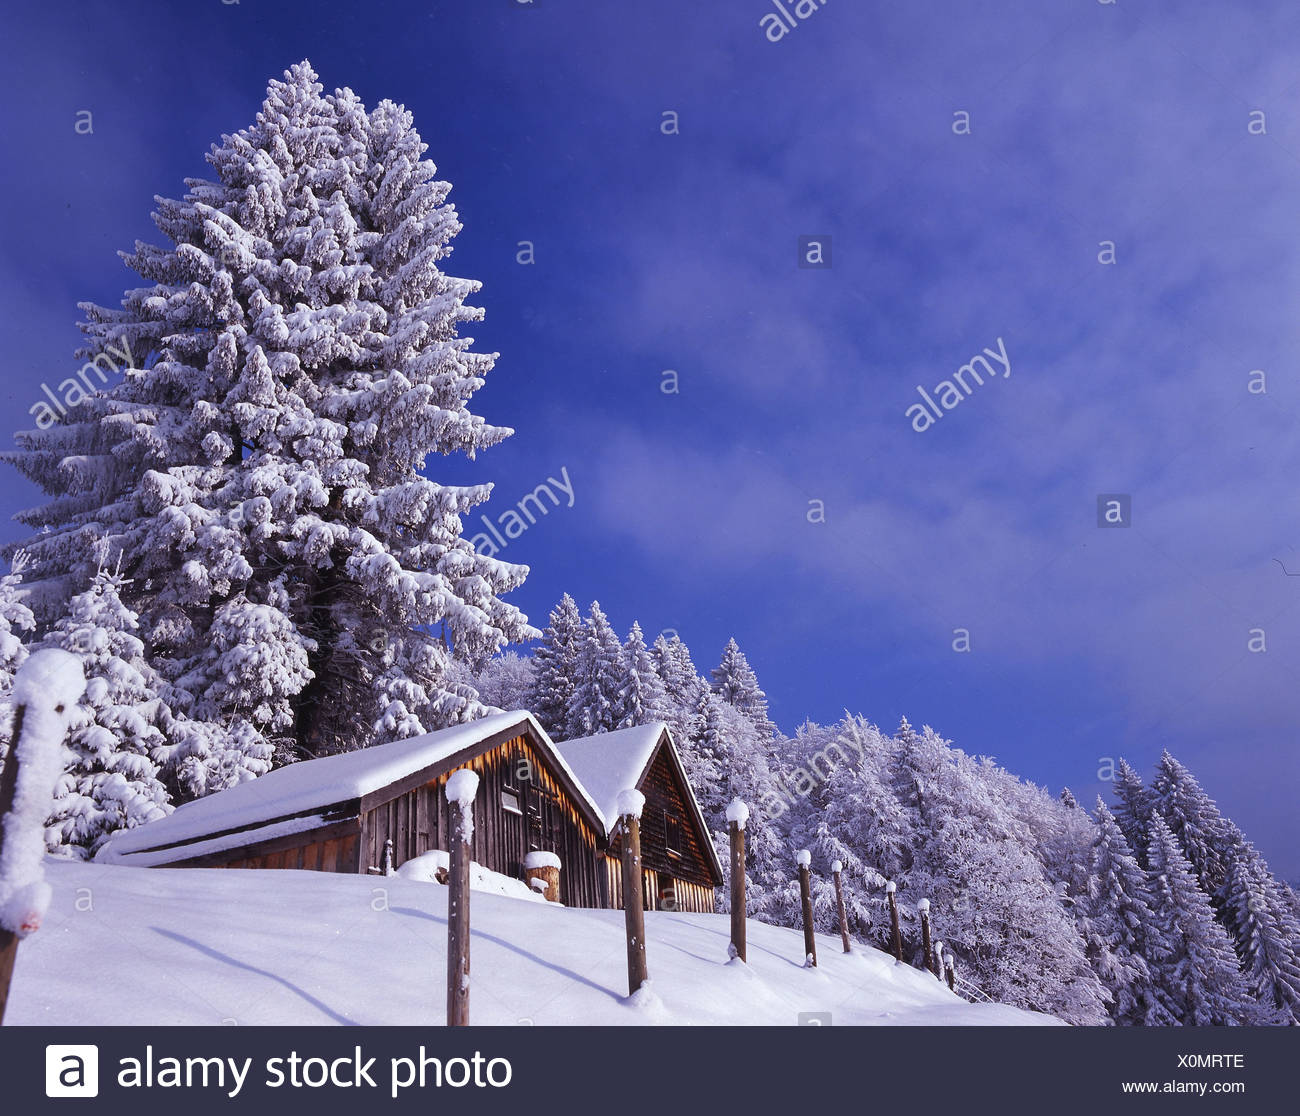 winter strong brook hamlet Alp alpine chalets huts alpine huts snowbound snow-covered snowy coniferous fore - Stock Image